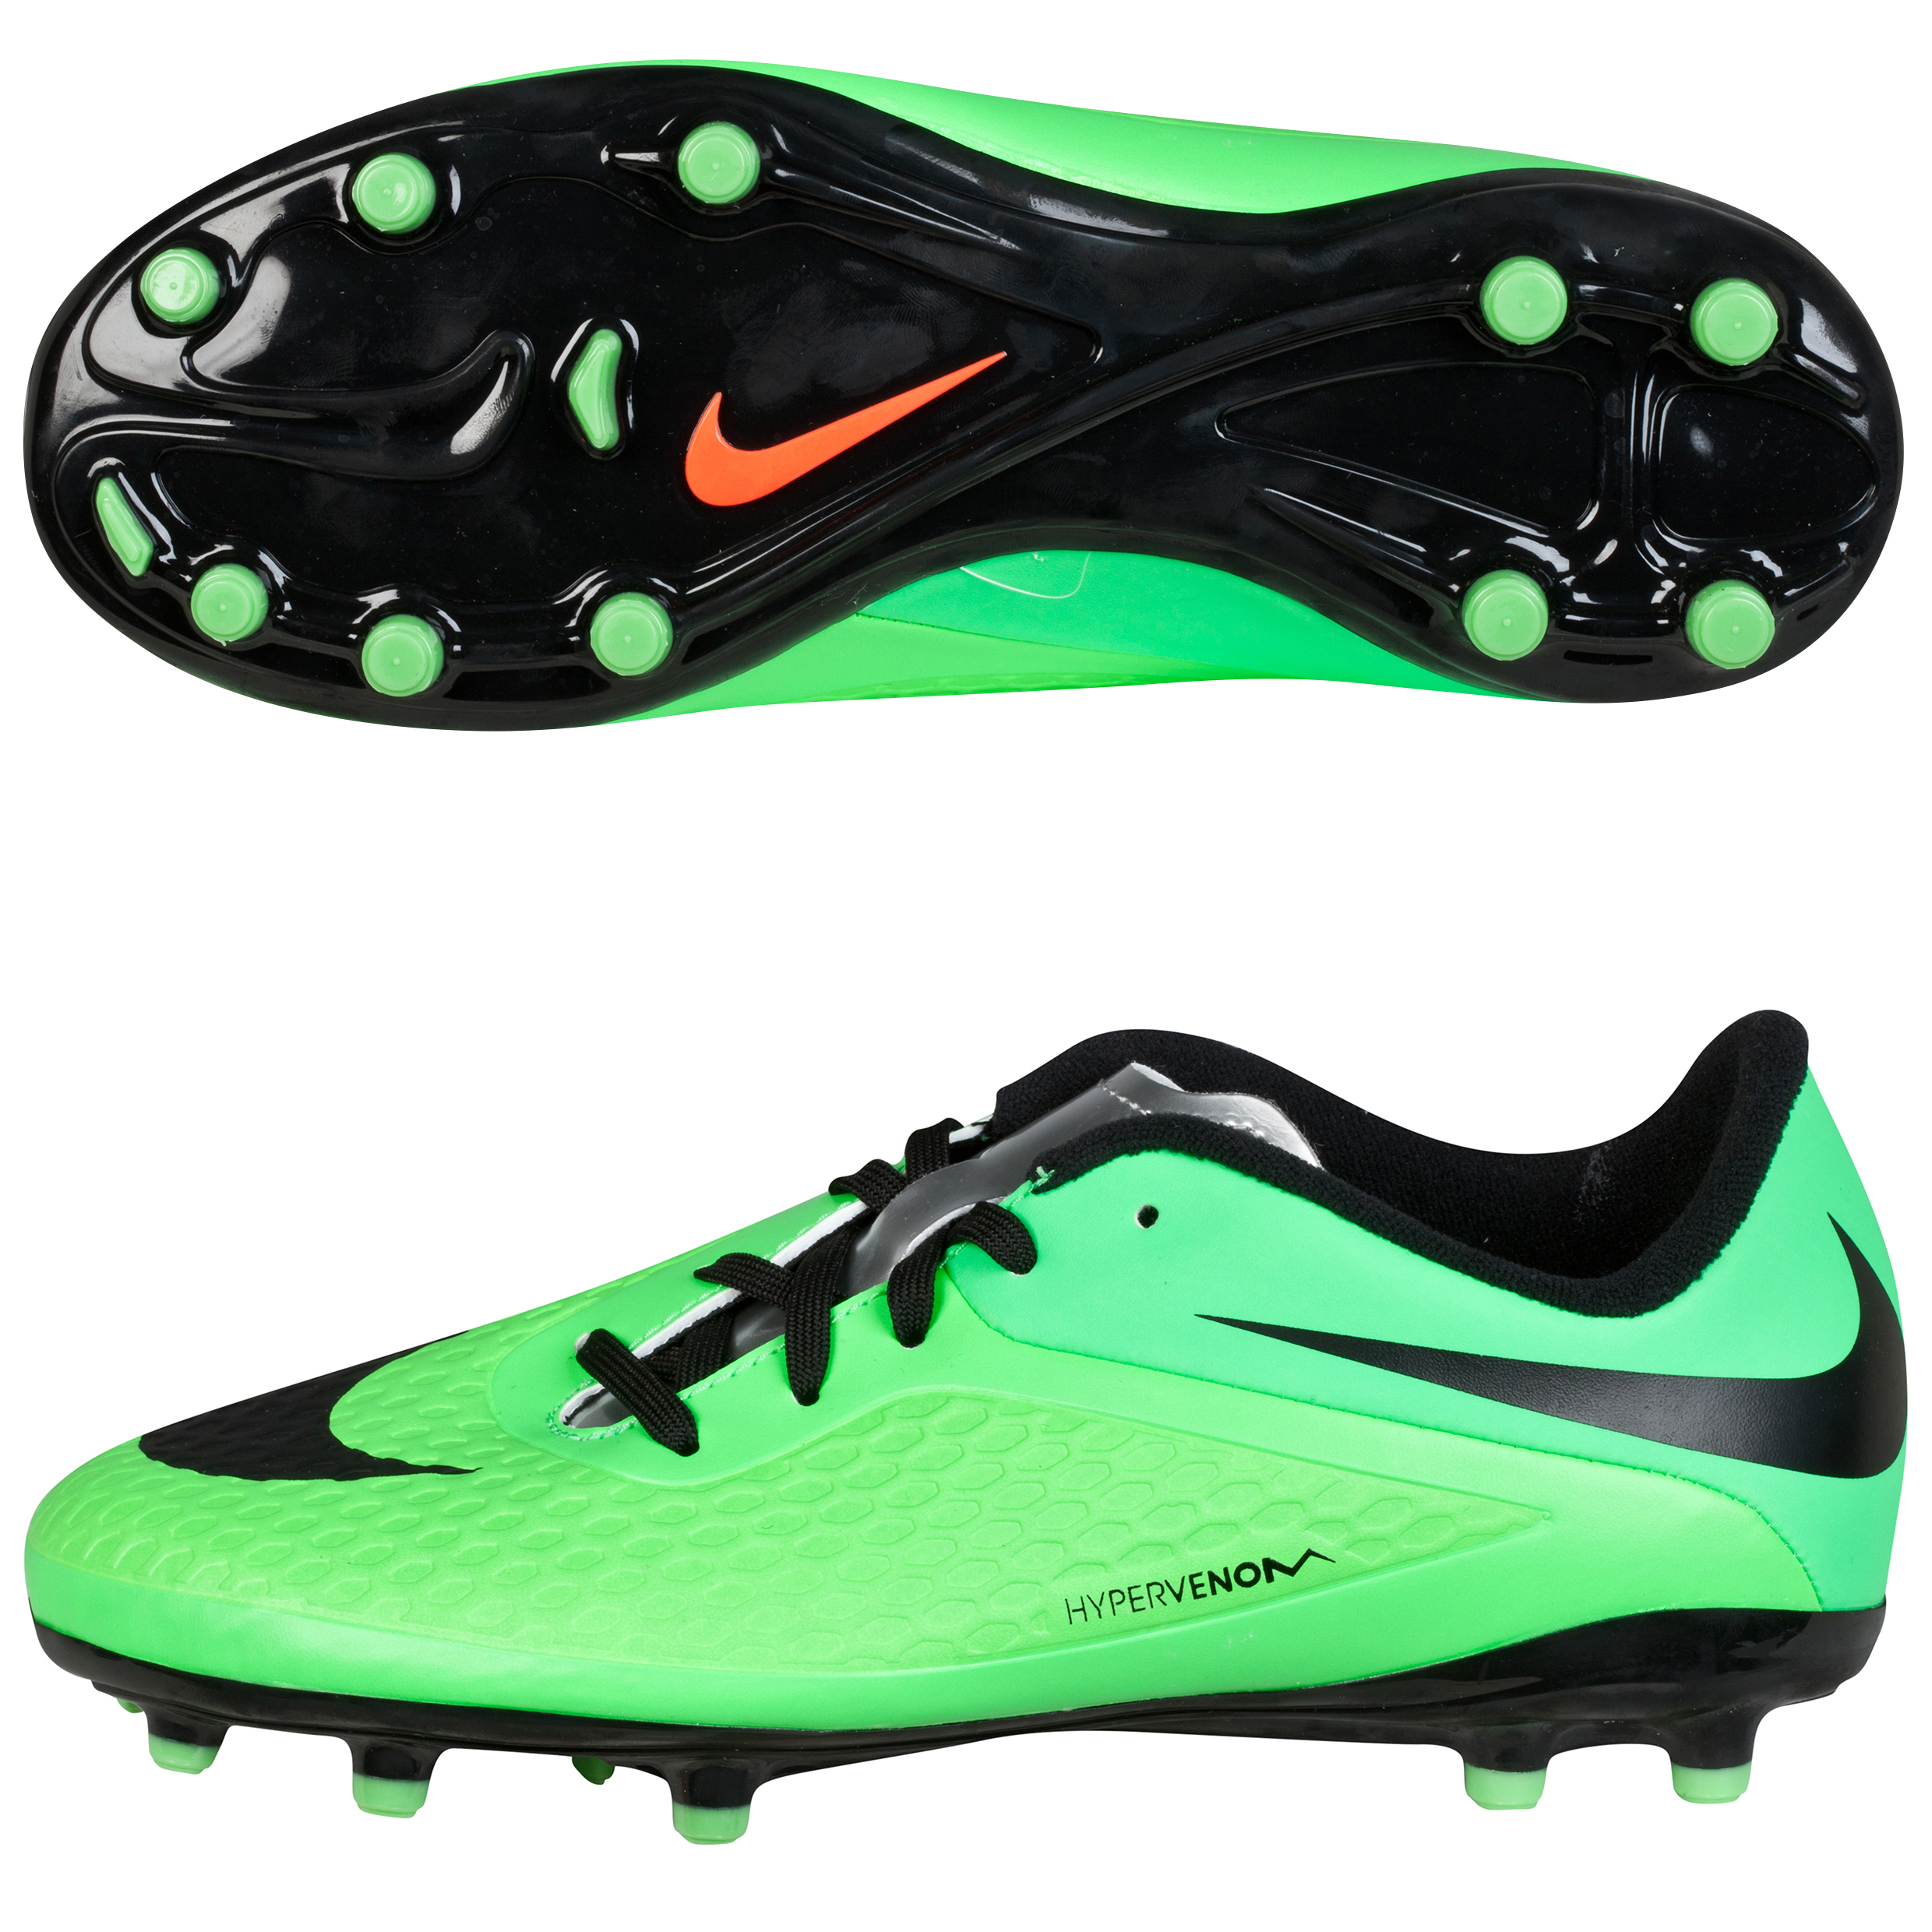 Nike Hypervenom Phelon Firm Ground Football Boots - Kids Green